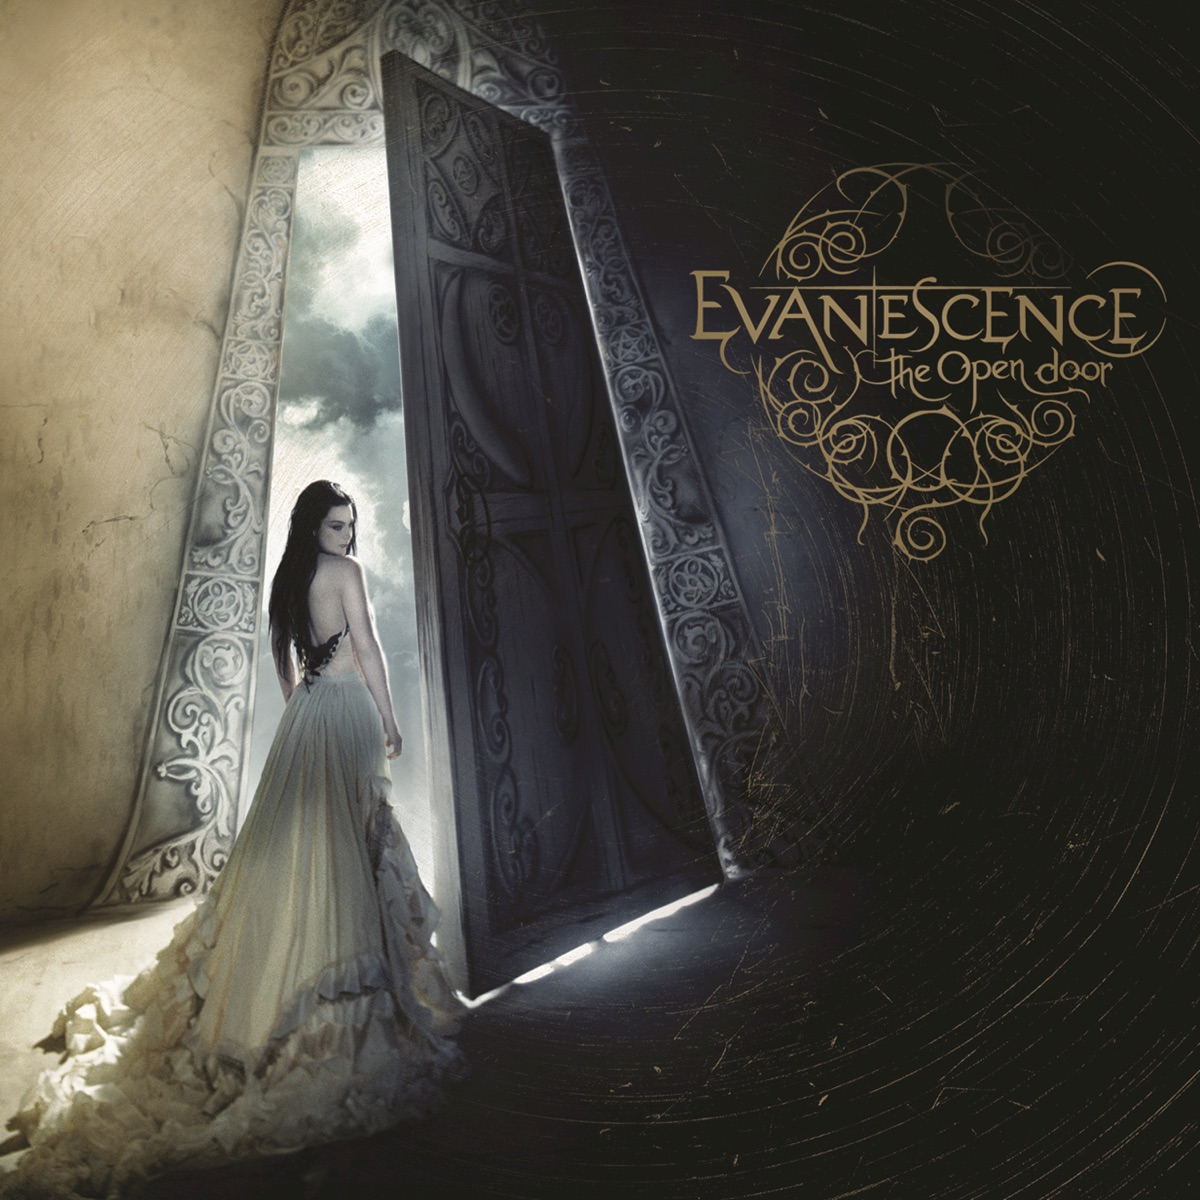 The Open Door Evanescence CD cover